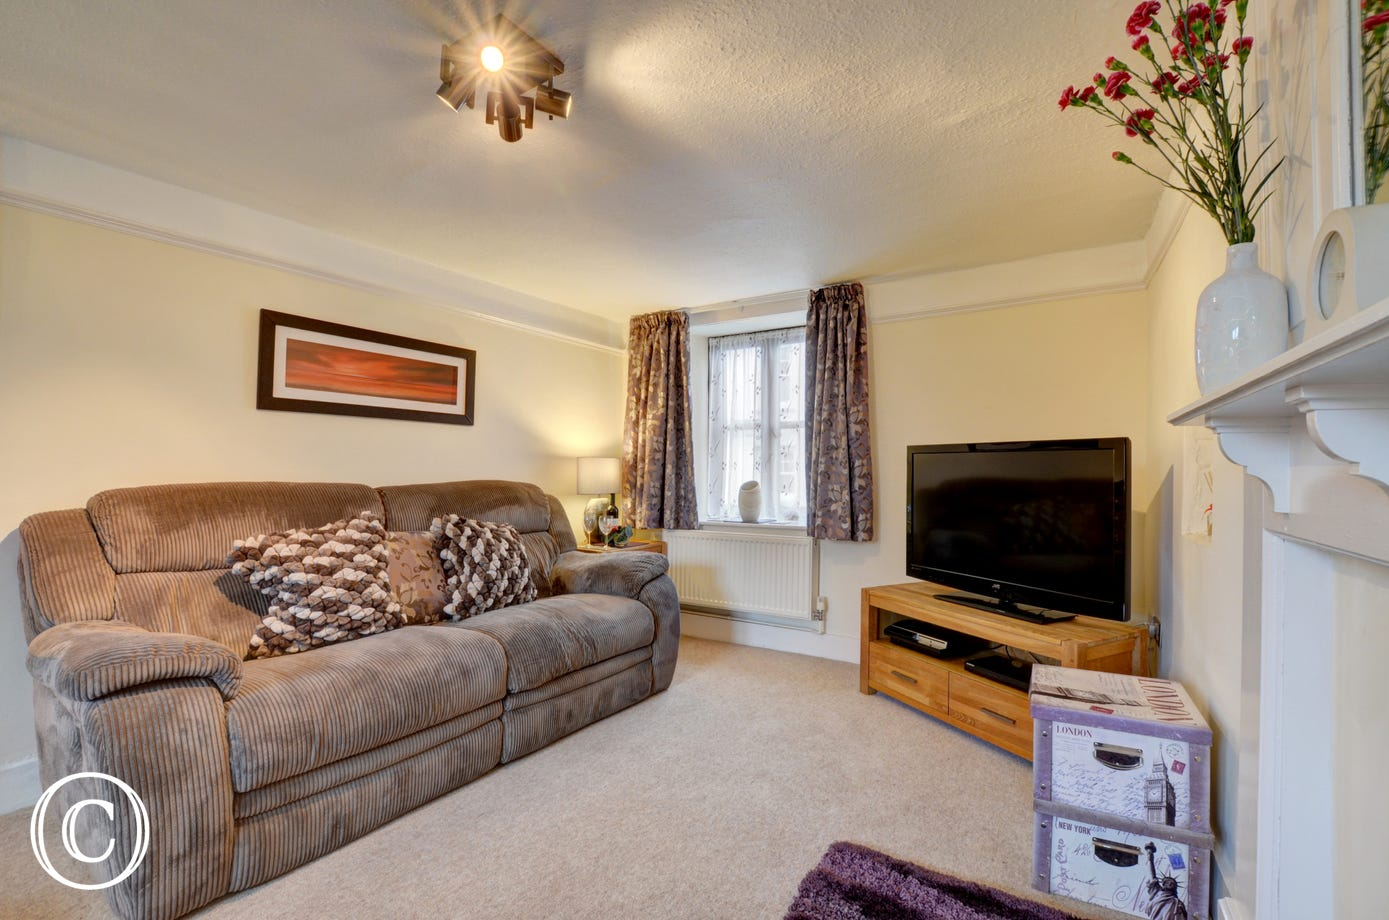 Homely sitting room with two comfortable sofas and a 42 inch TV